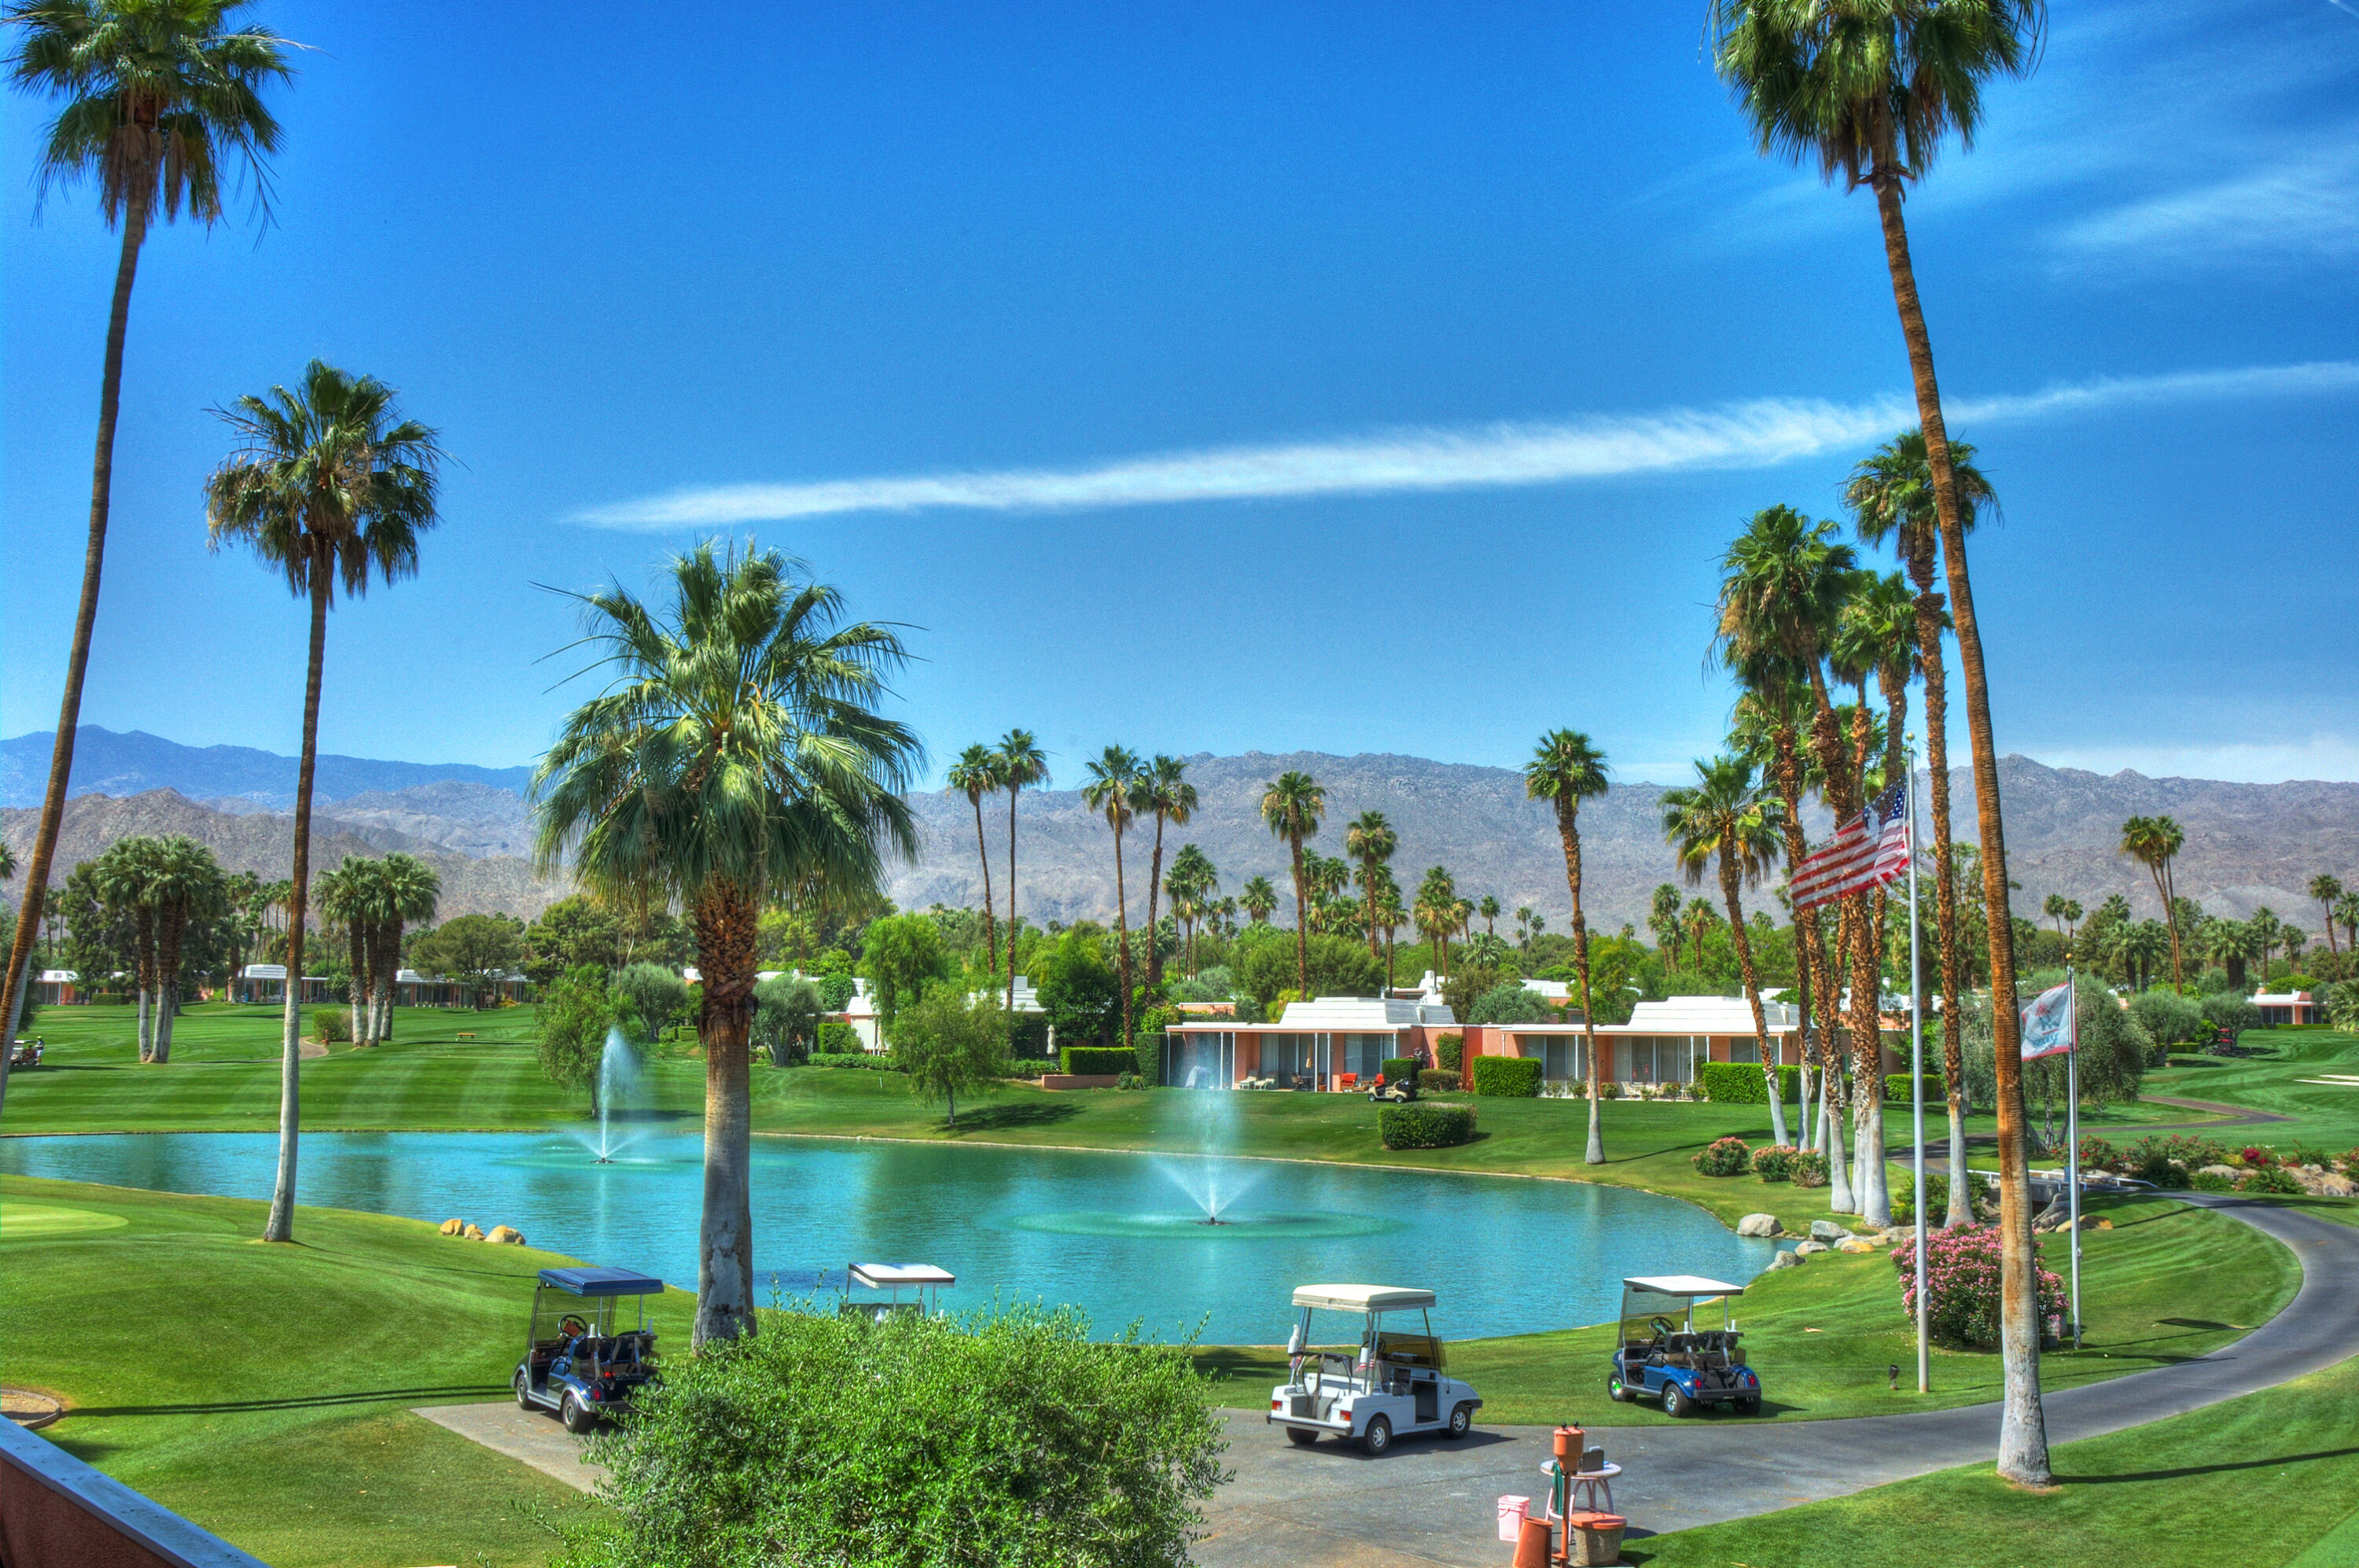 Marrakesh Country Club is an exquisite John Elgin Woolf architecturally inspired luxury community in the heart of Palm Desert just blocks from the upscale shopping and dining street of El Paseo.  This unique residence welcomes you through an oversized front courtyard with pet friendly lawn, wood burning fire pit, outdoor shower in the atrium and a lush desert landscape.  The oversized double door entry opens to a large living room/dining room with wall mounted surround sound TV, modern electric fireplace, and dramatic chandelier.  The kitchen boasts new appliances with adjoining laundry room and pantry.  Walls of glass open to a rear- patio steps to NEW 18 hole putting green and NEW state of the art Clubhouse to be completed Spring of 2022.  Enjoy amazing golf course and sprawling mountain views in this comfortable desert home.